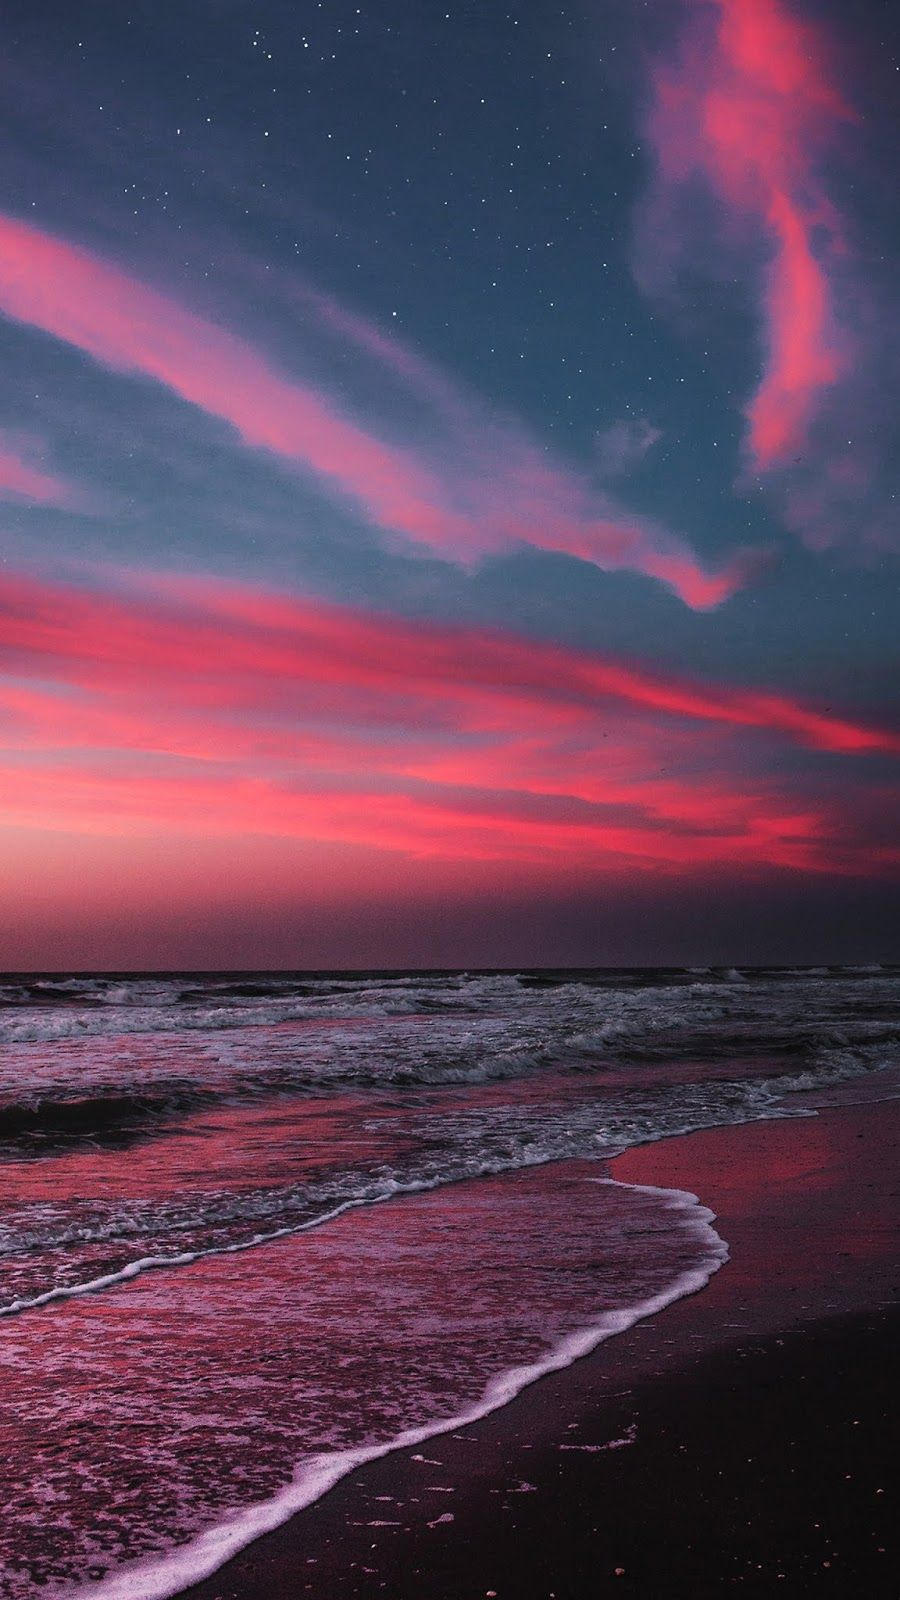 Beach In The Twilight Sunset Wallpaper Iphone Android Background Followme Scenery Wallpaper Sky Aesthetic Sunset Wallpaper